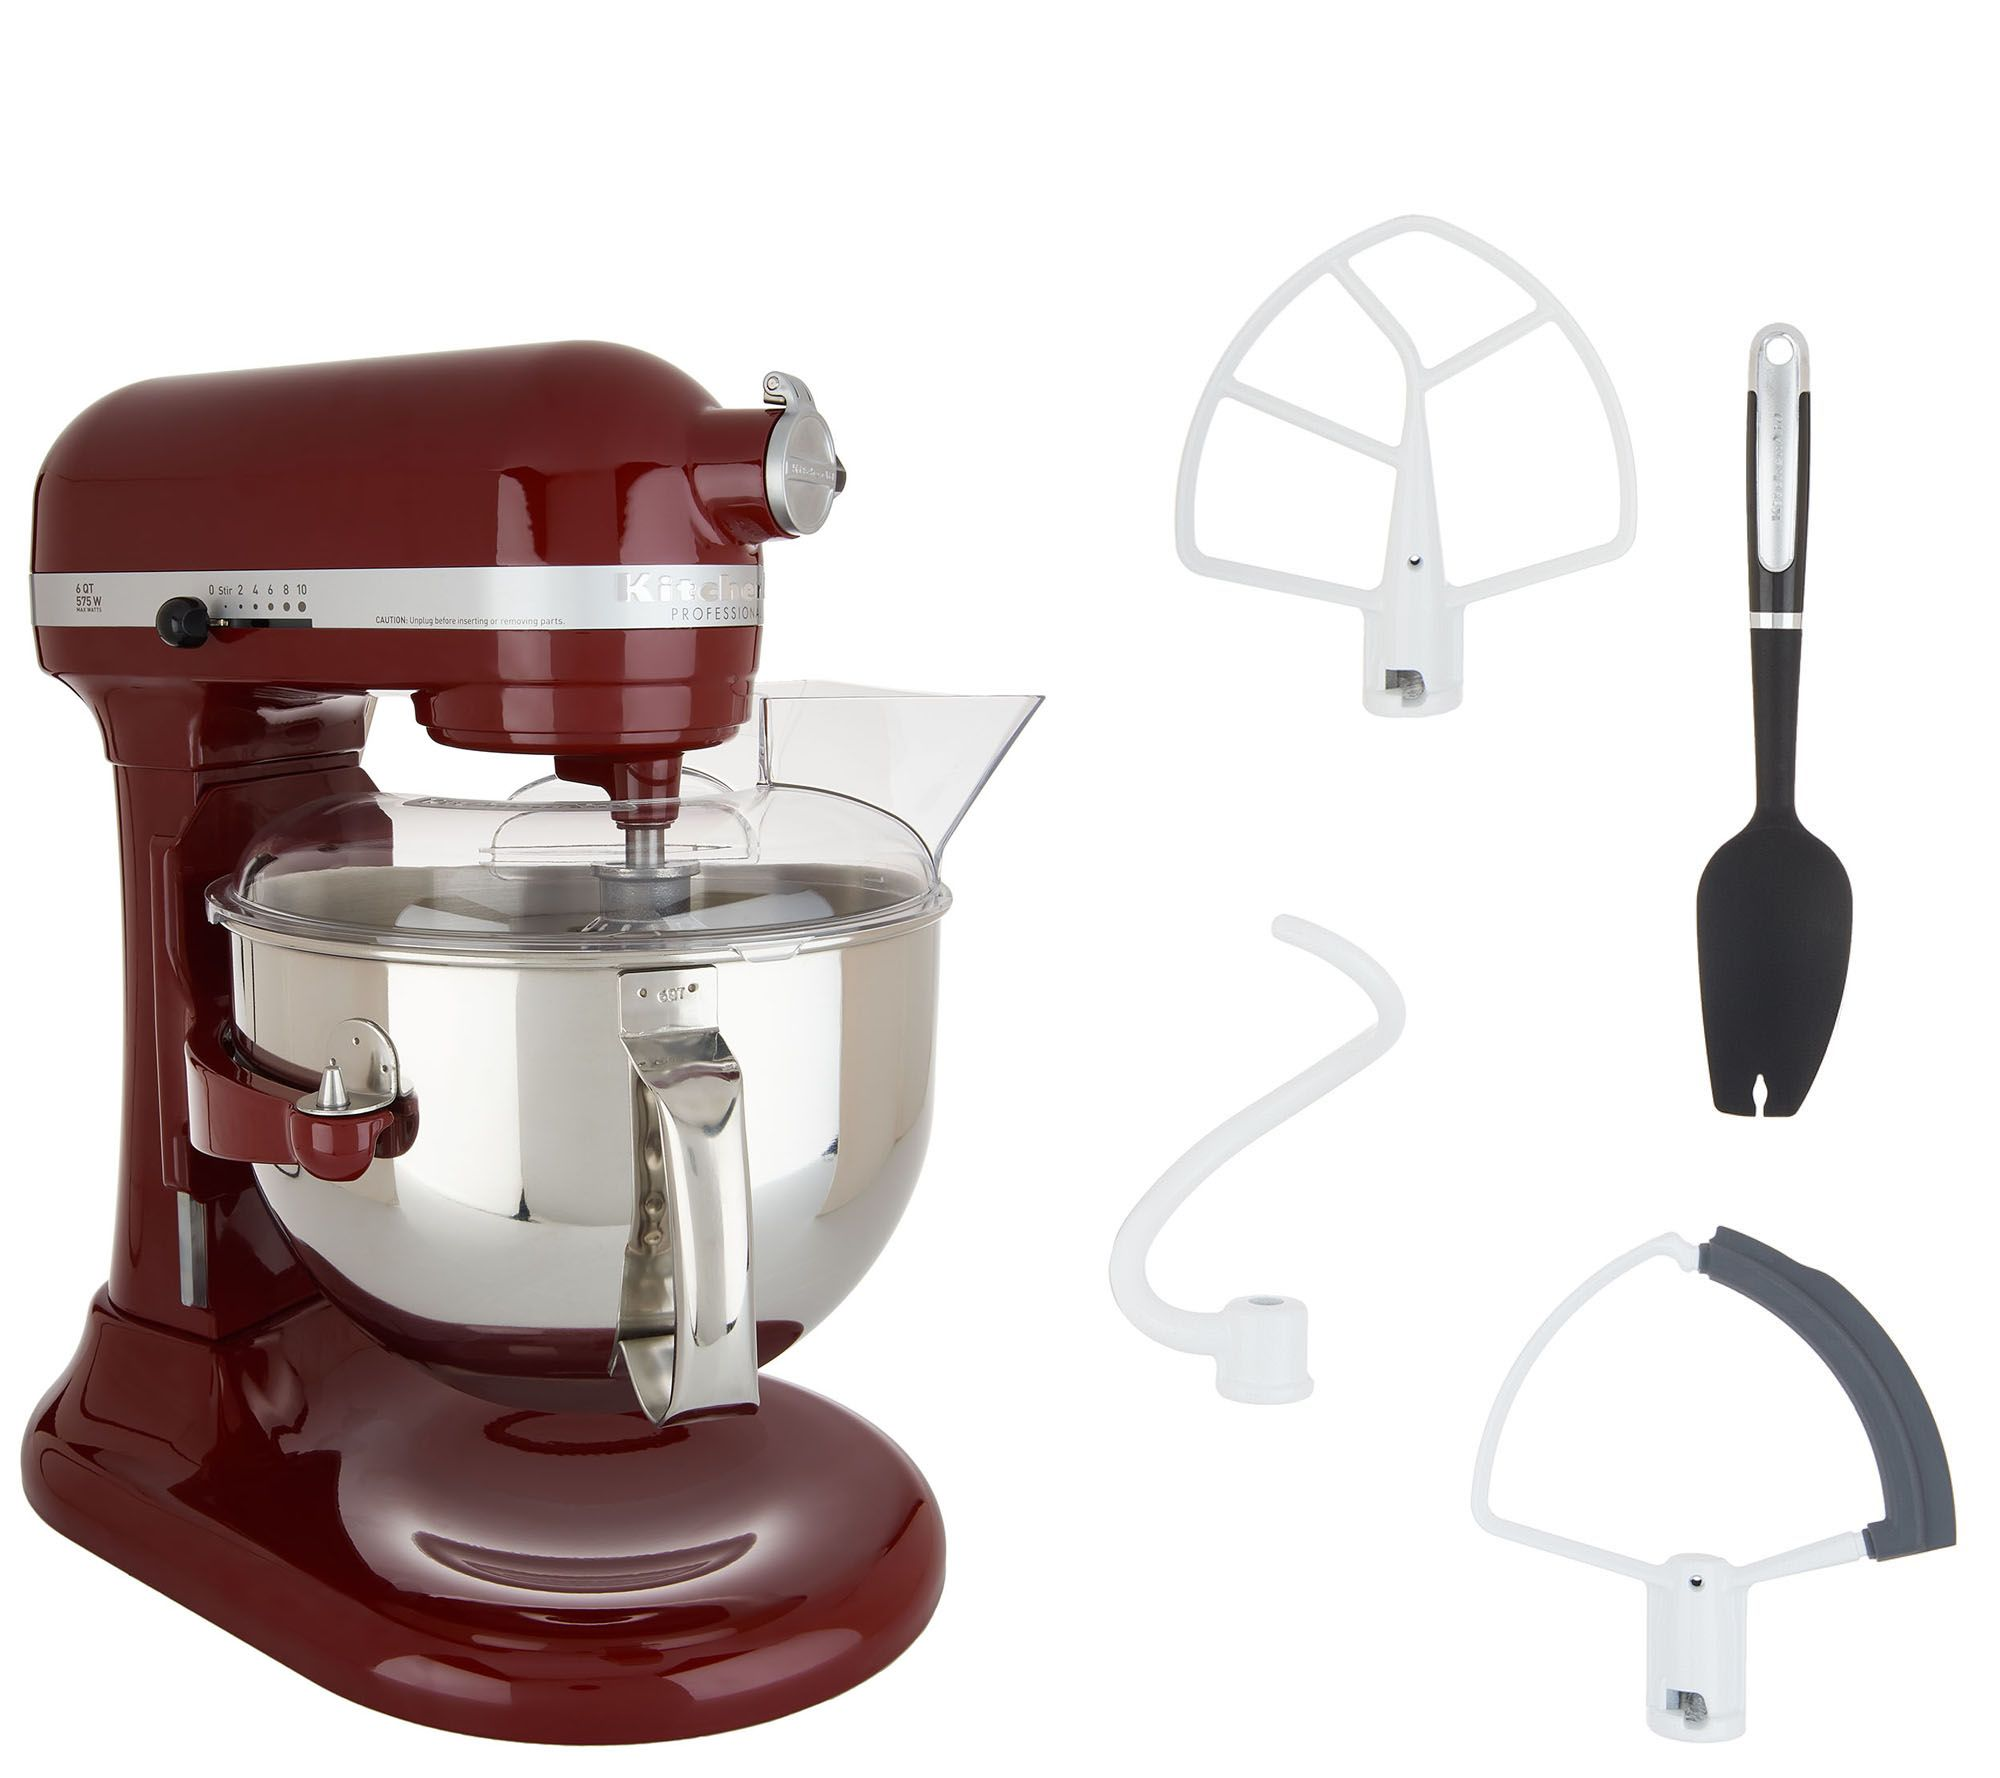 KitchenAid Pro 600 6-qt Bowl Lift Stand Mixer w/ Flex Edge Beater — QVC com